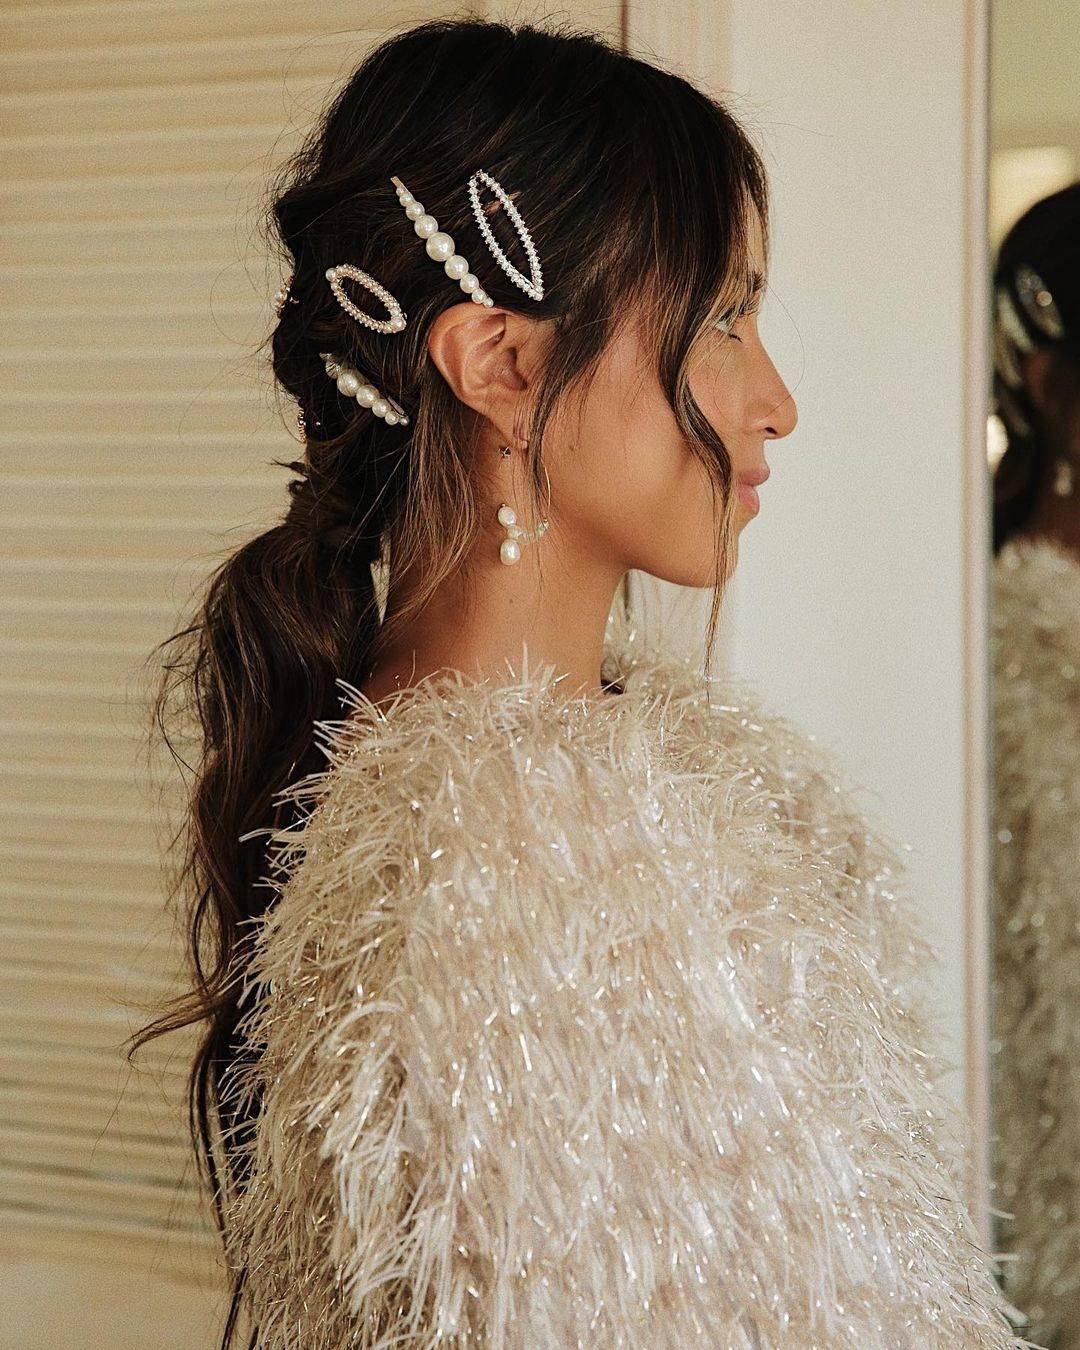 Low ponytail with barrettes